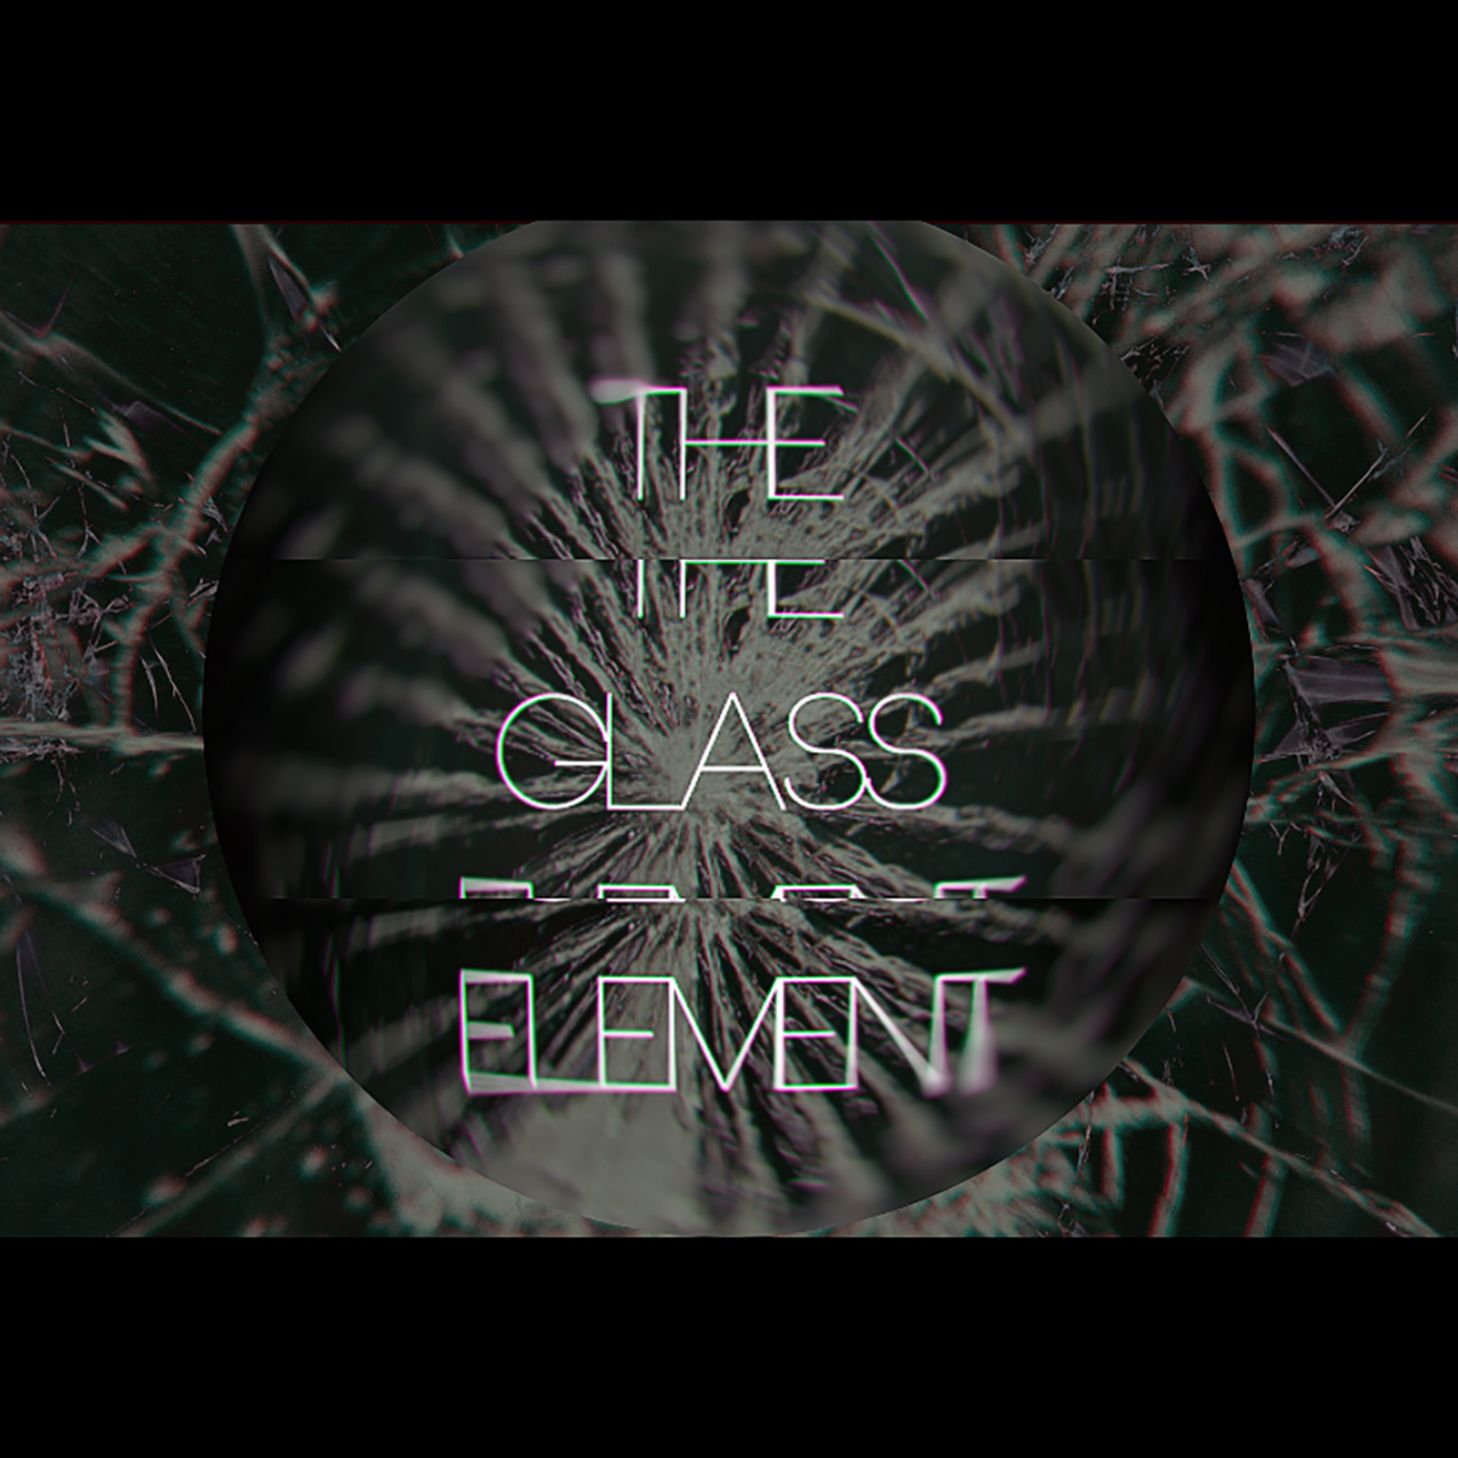 The Glass Element